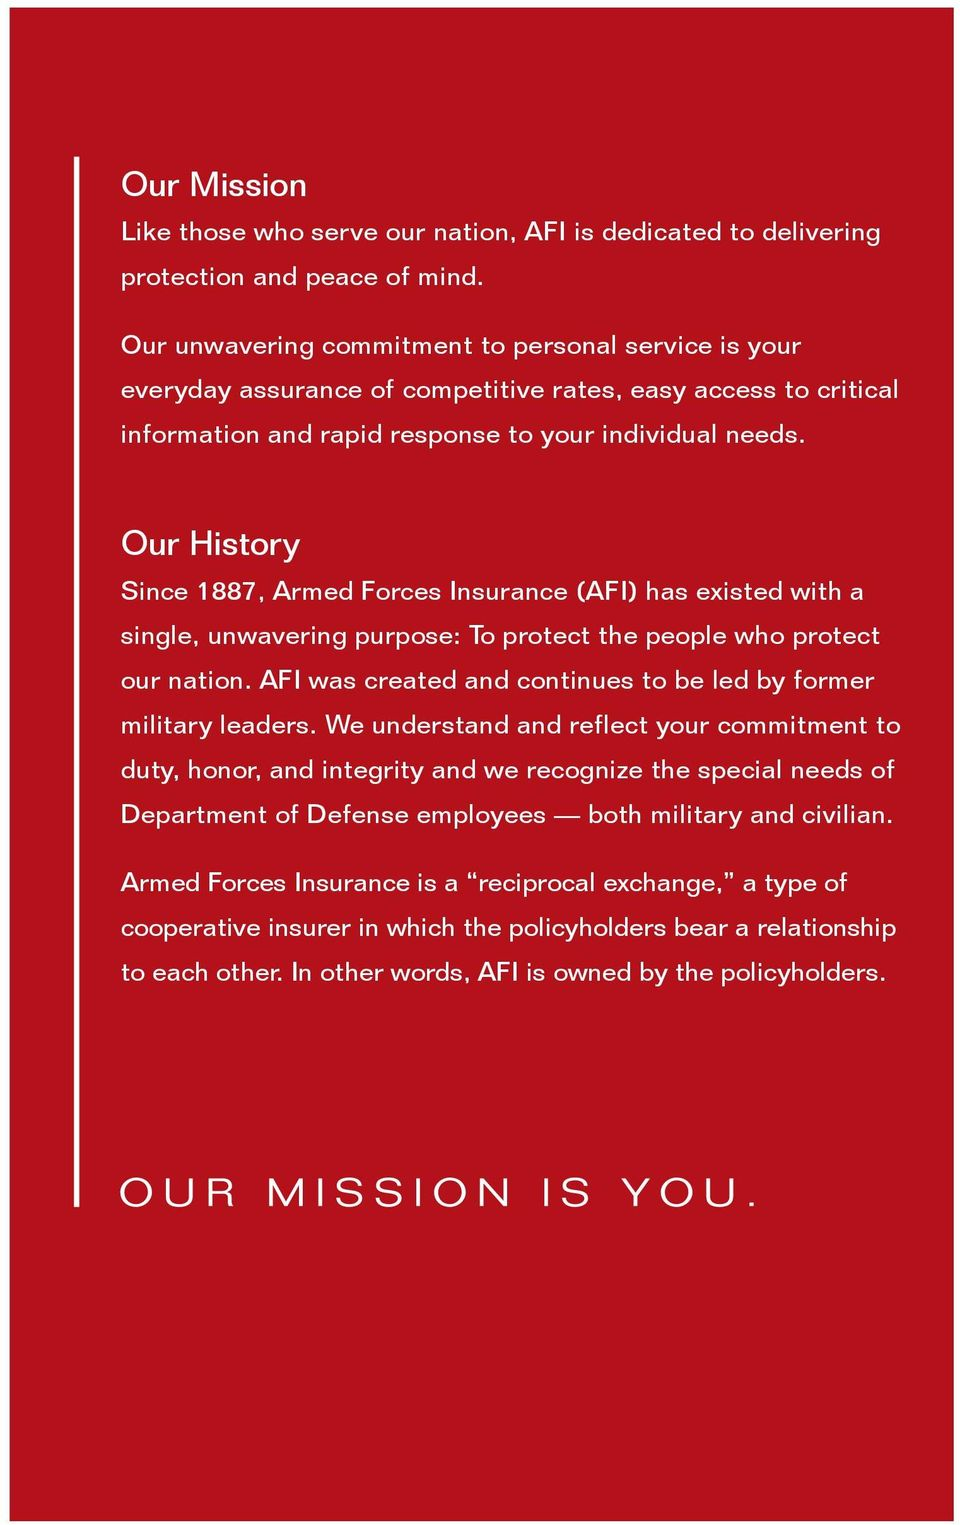 Our History Since 1887, Armed Forces Insurance (AFI) has existed with a single, unwavering purpose: To protect the people who protect our nation.